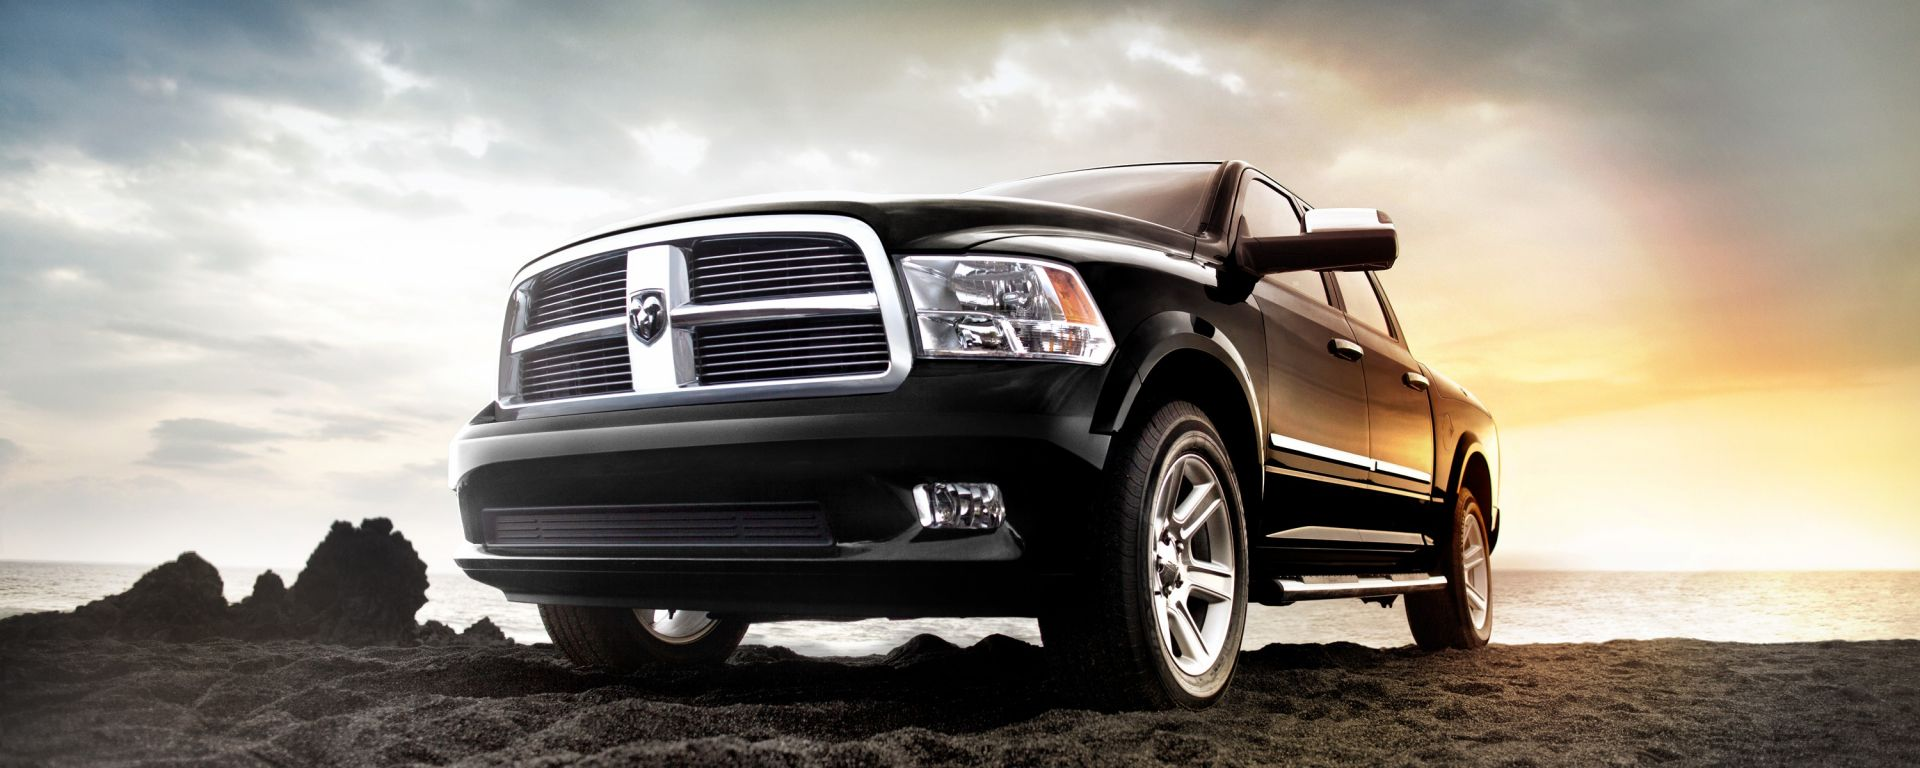 Ram Laramie Limited Edition